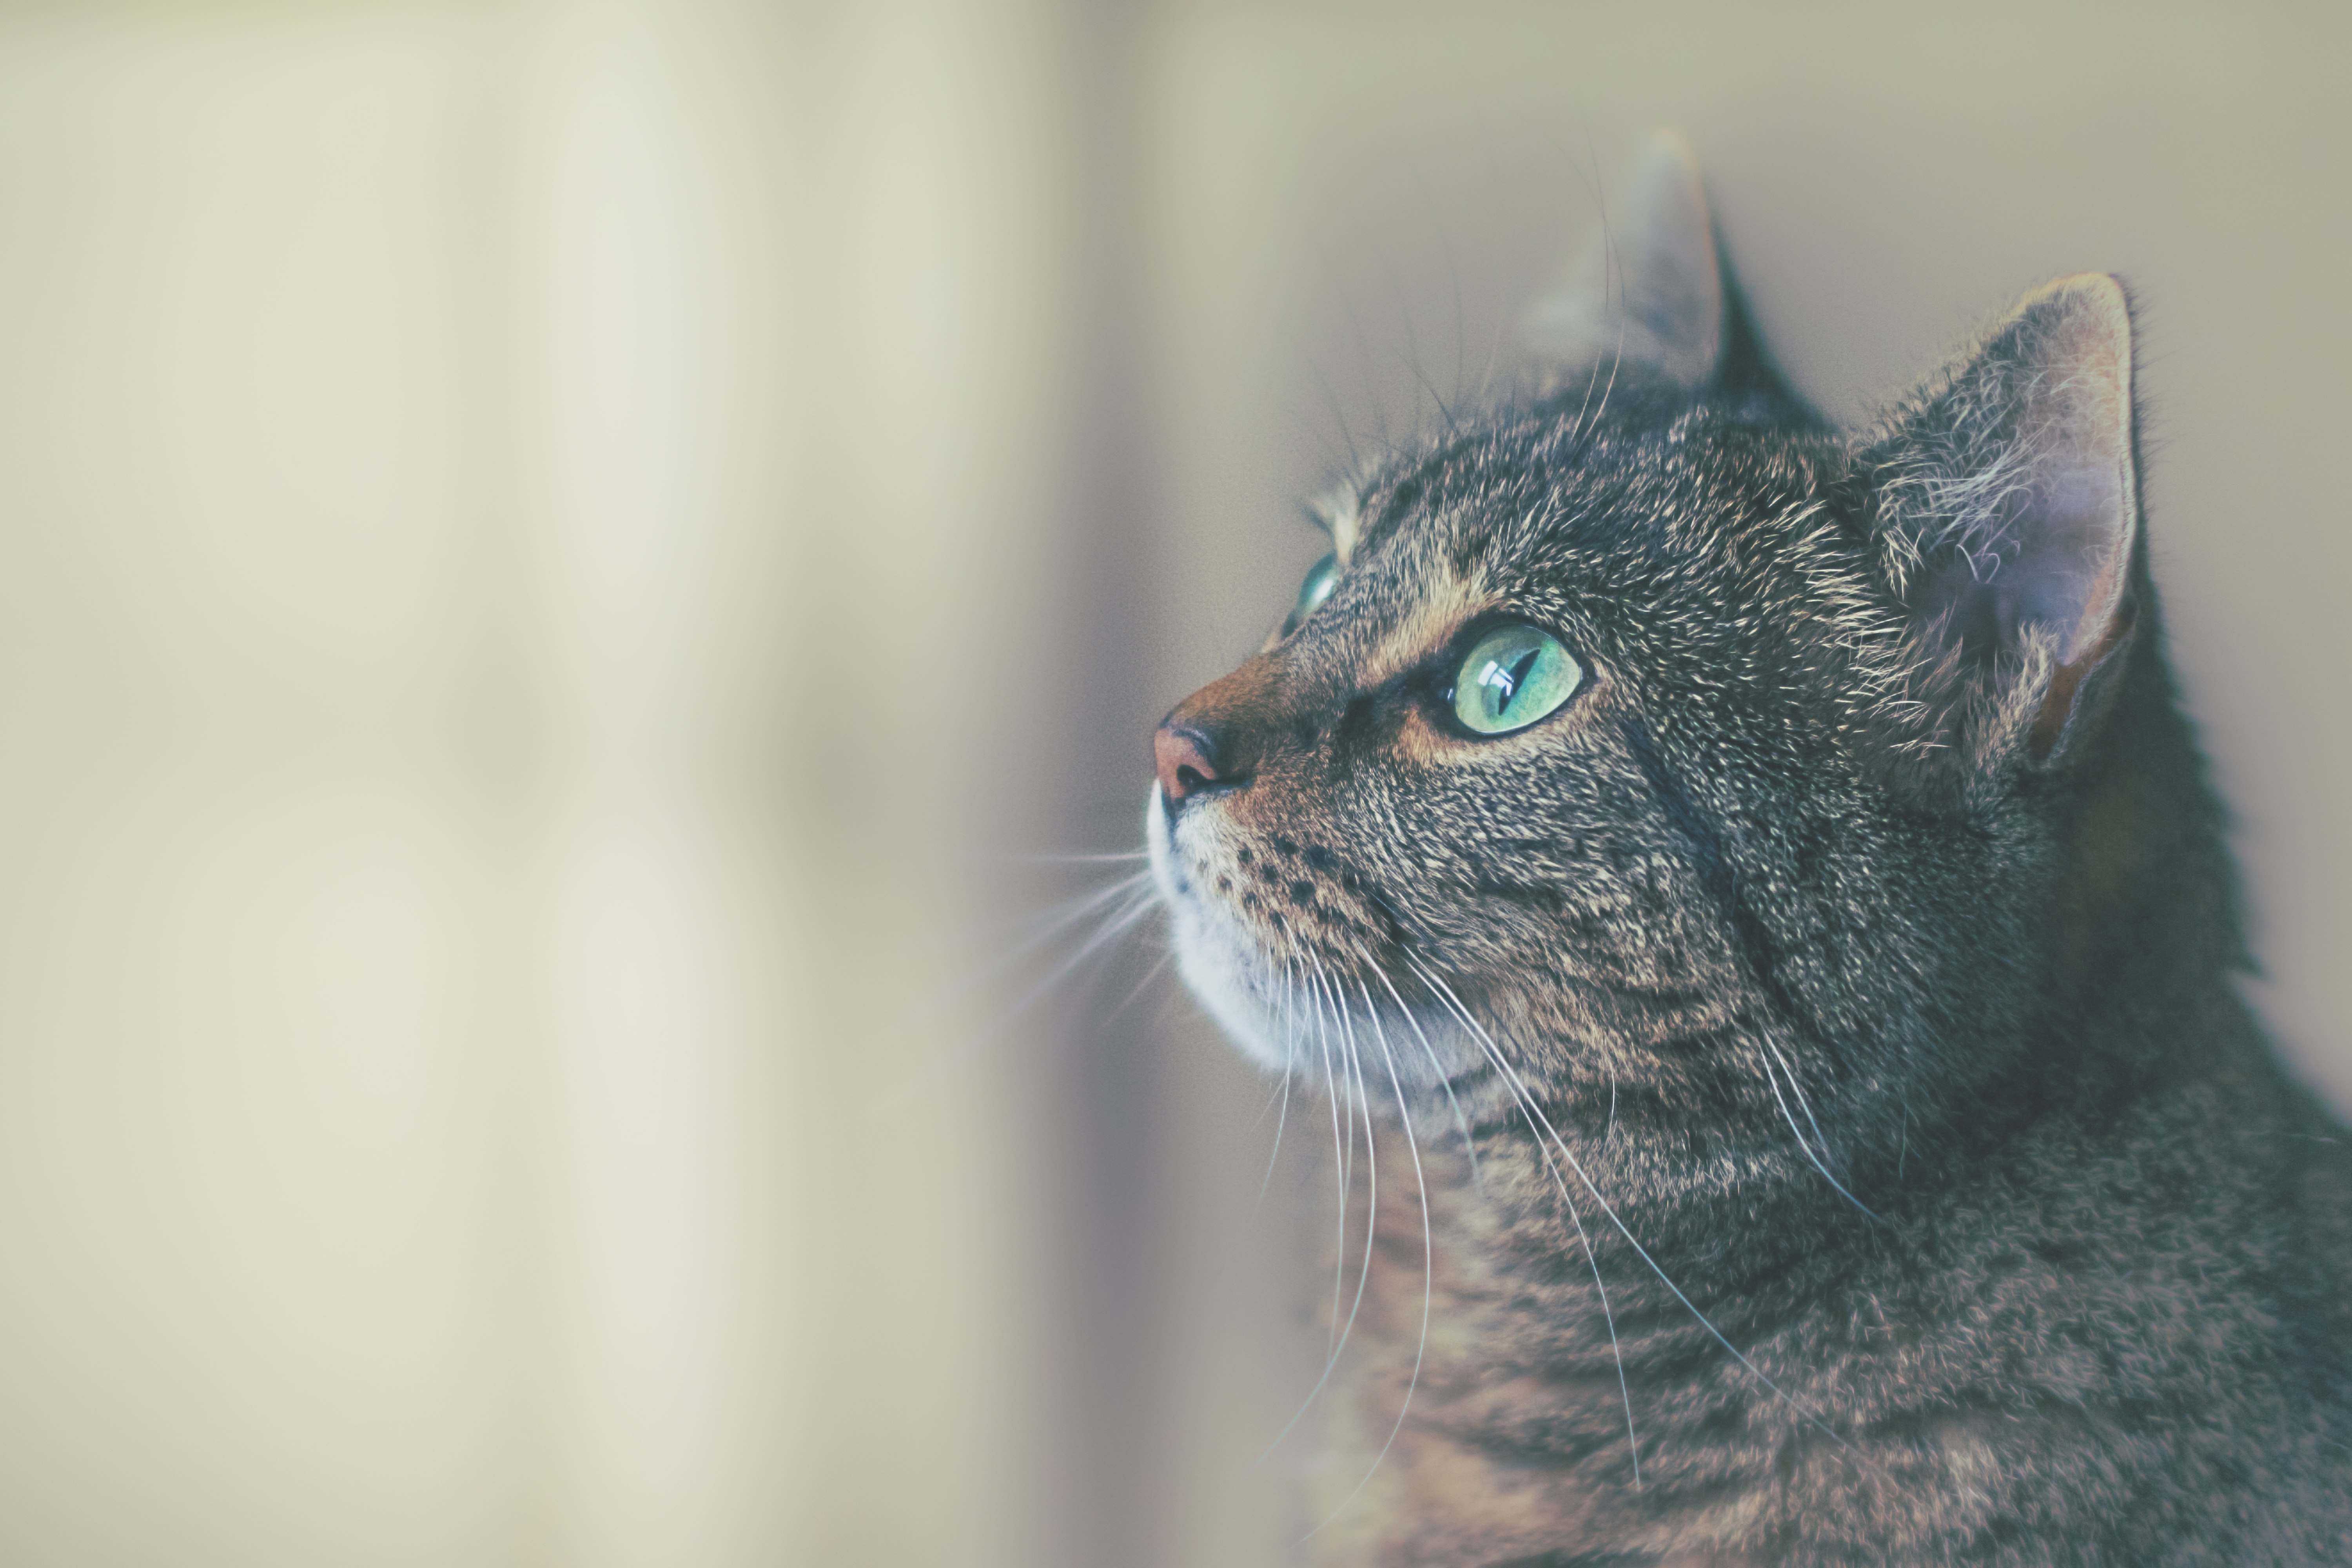 20 Cat Pictures Images Hd Download Free Images Stock Photos